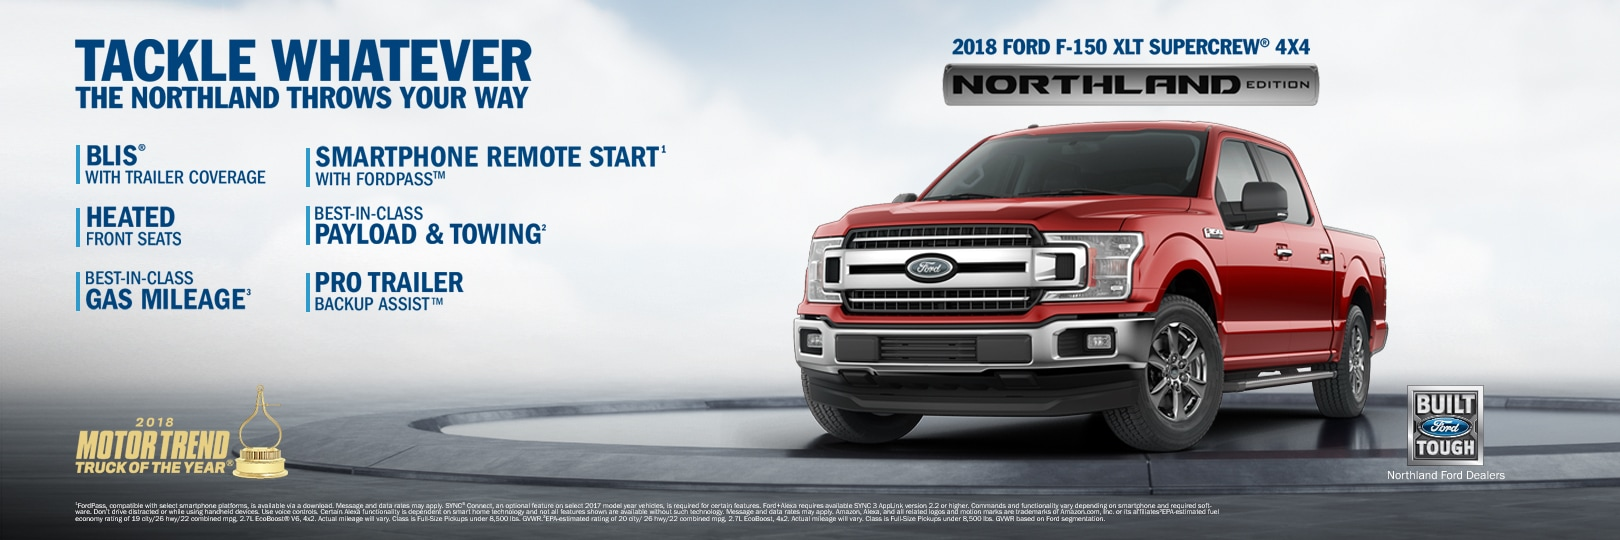 Northland Ford F-150.jpg